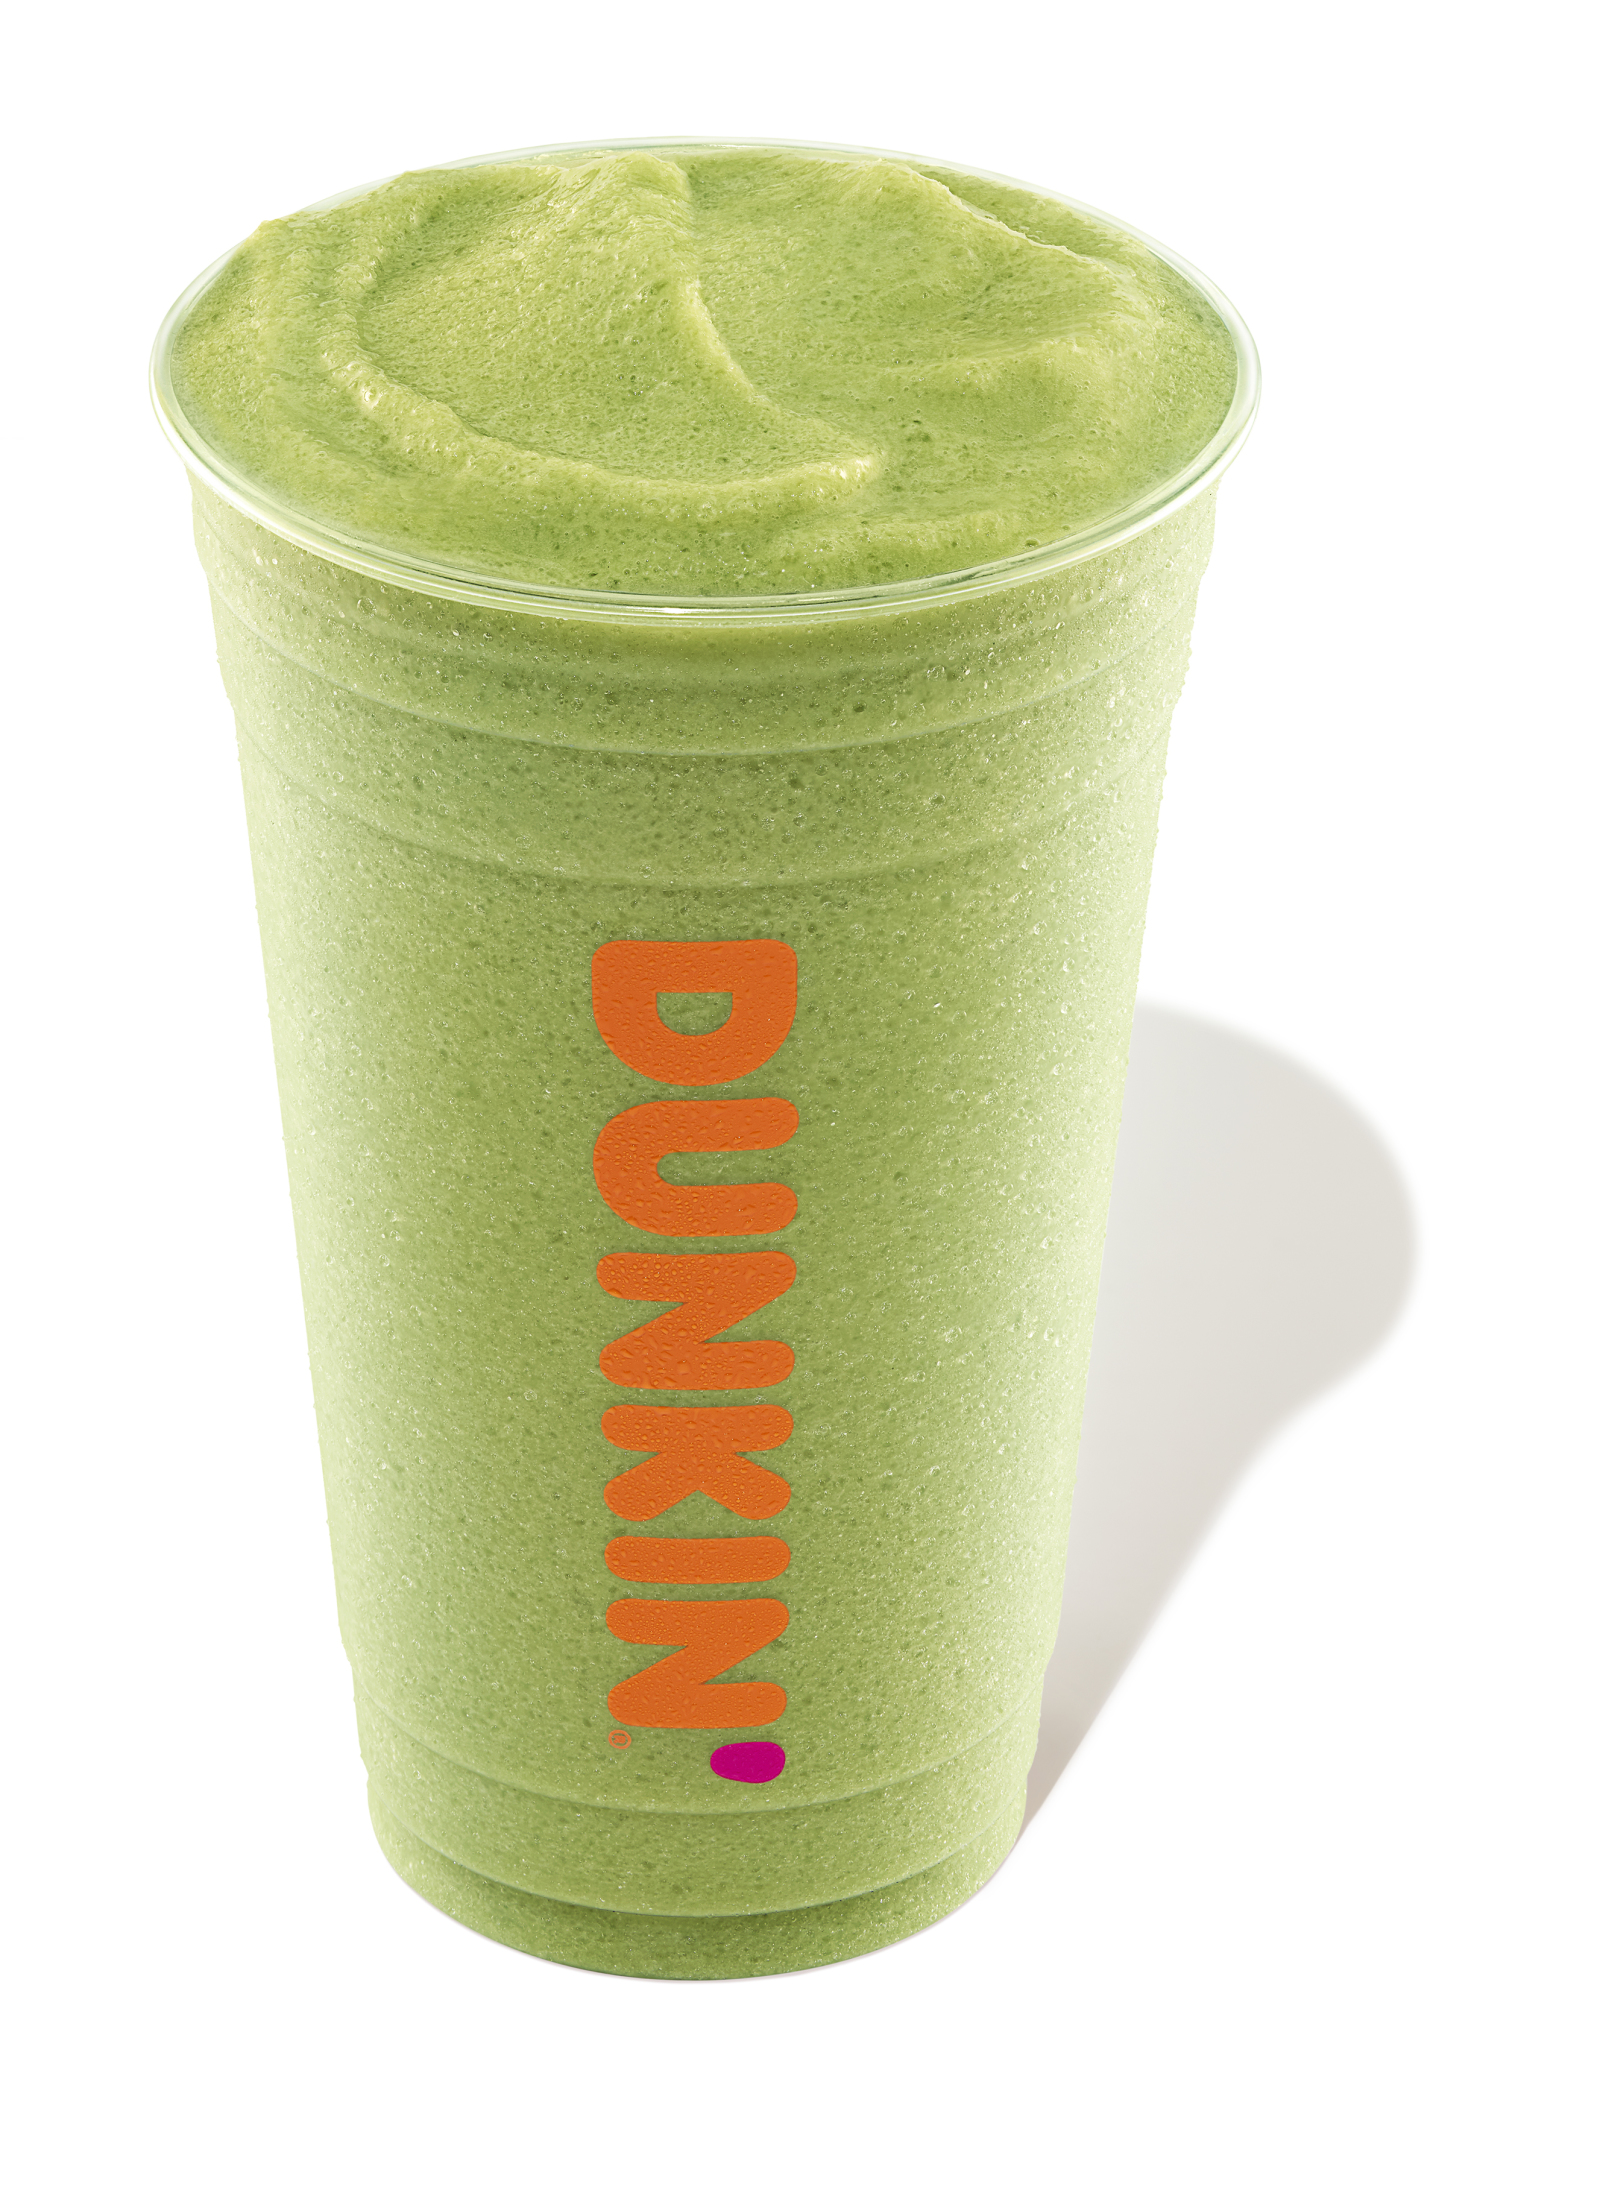 Dunkin' Matcha Lattes, time to refresh and reset your day